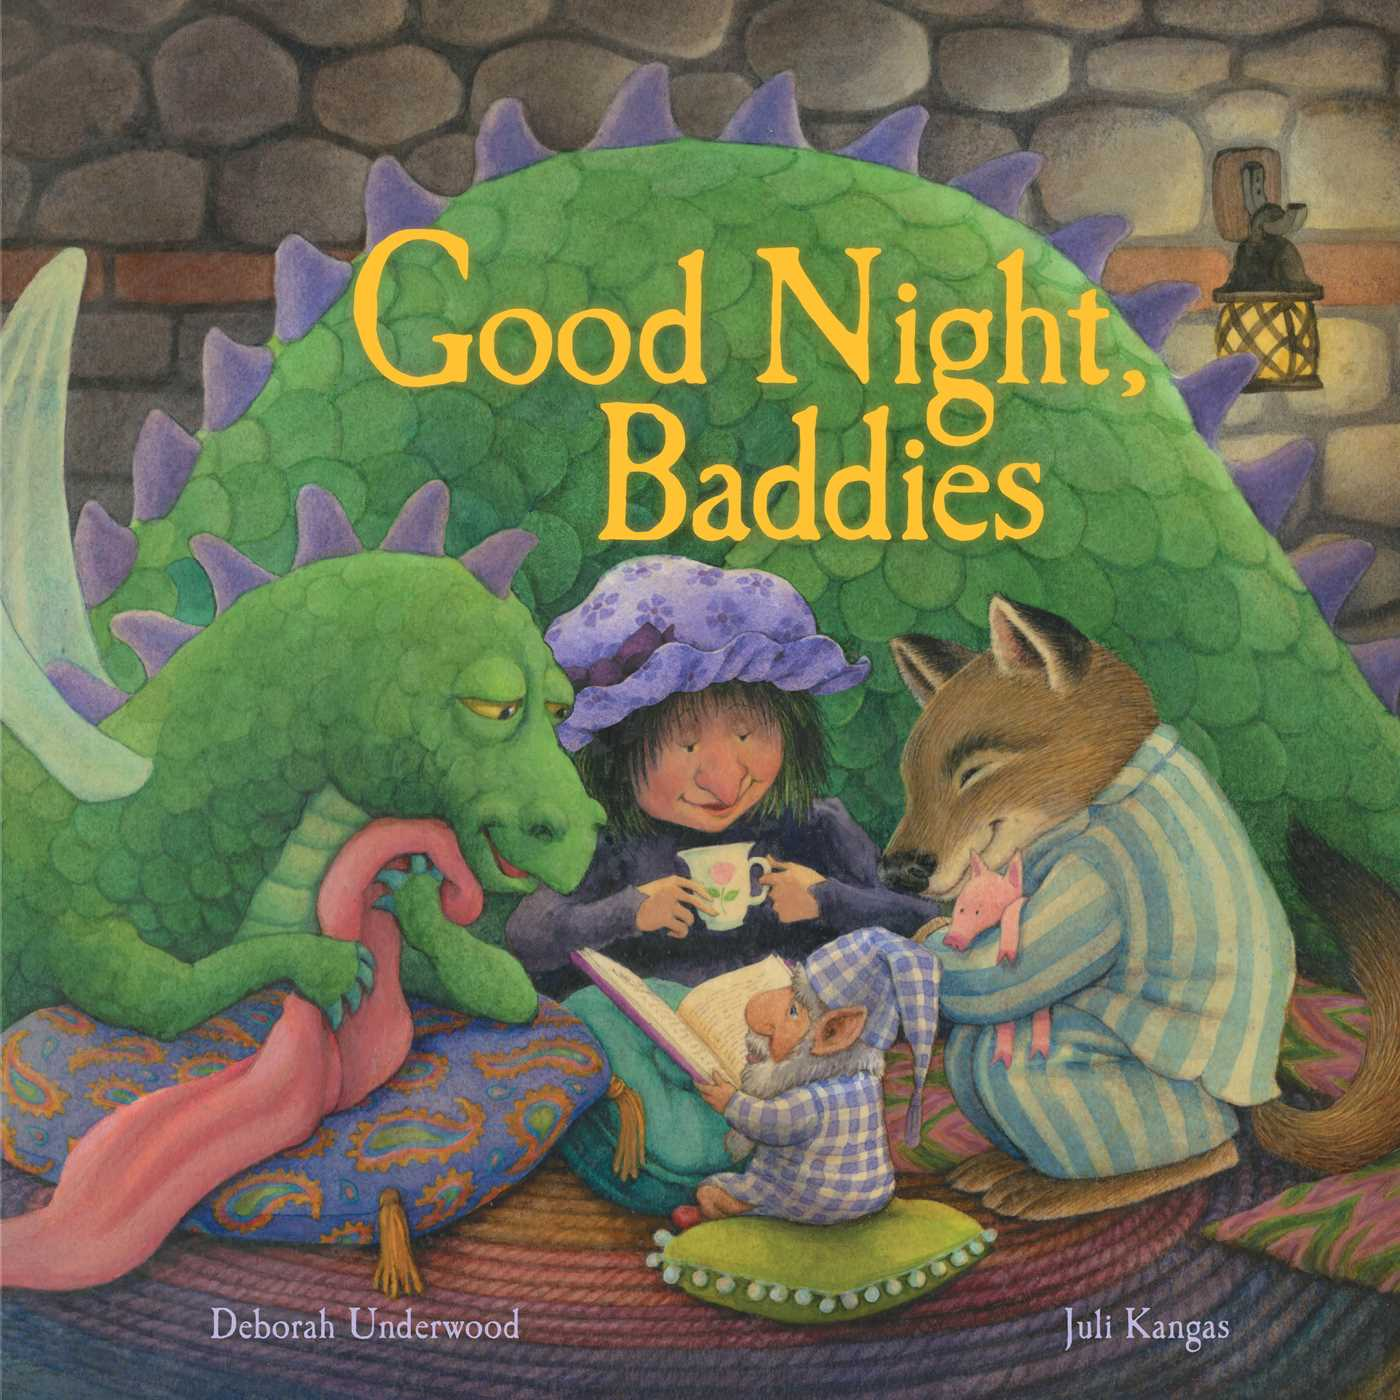 Good Night Baddies  by Deborah Underwood   All fairy tales have a bad guy; an evil witch, a hungry wolf or an angry giant. But what if being a bad guy is just a day job? When they get together in the evening for dinner, what would they talk about? What is their side of the story? I love this book, because preschoolers especially are often obsessed with bad guys and good guys. In  Good Night Baddies we get to see a complex mix of both in some characters the reader will easily recognize.